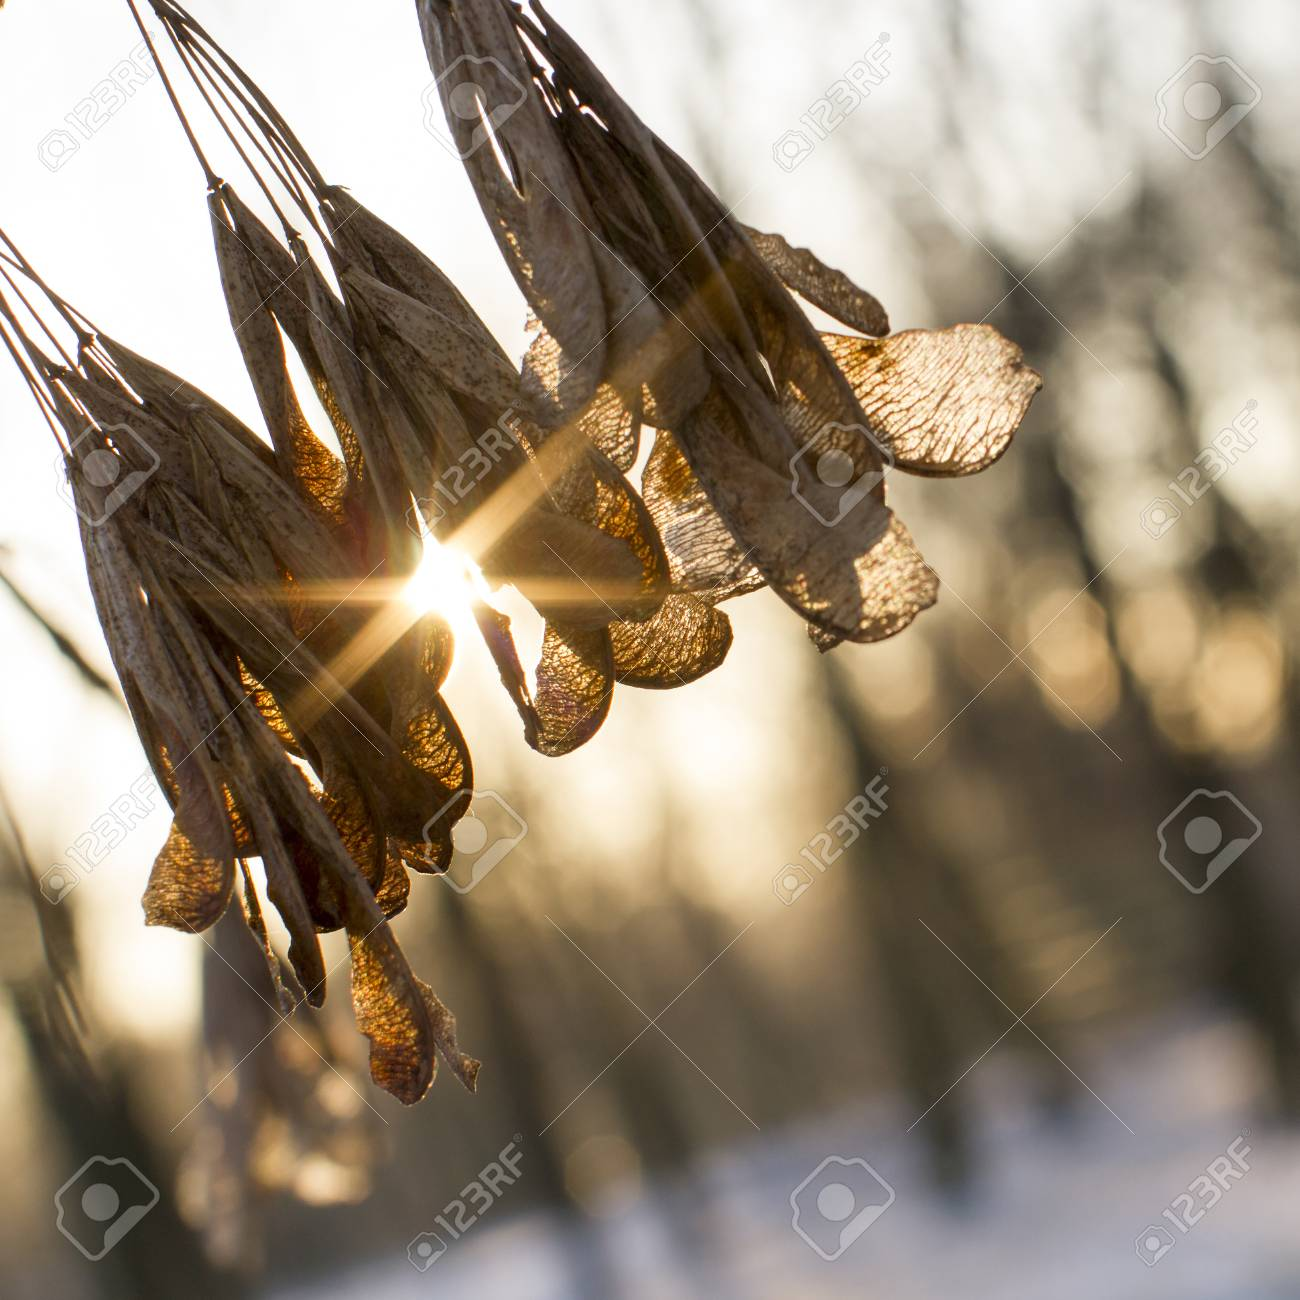 The sun shines through the dry leaves on the tree. Winter landscape. - 50919463